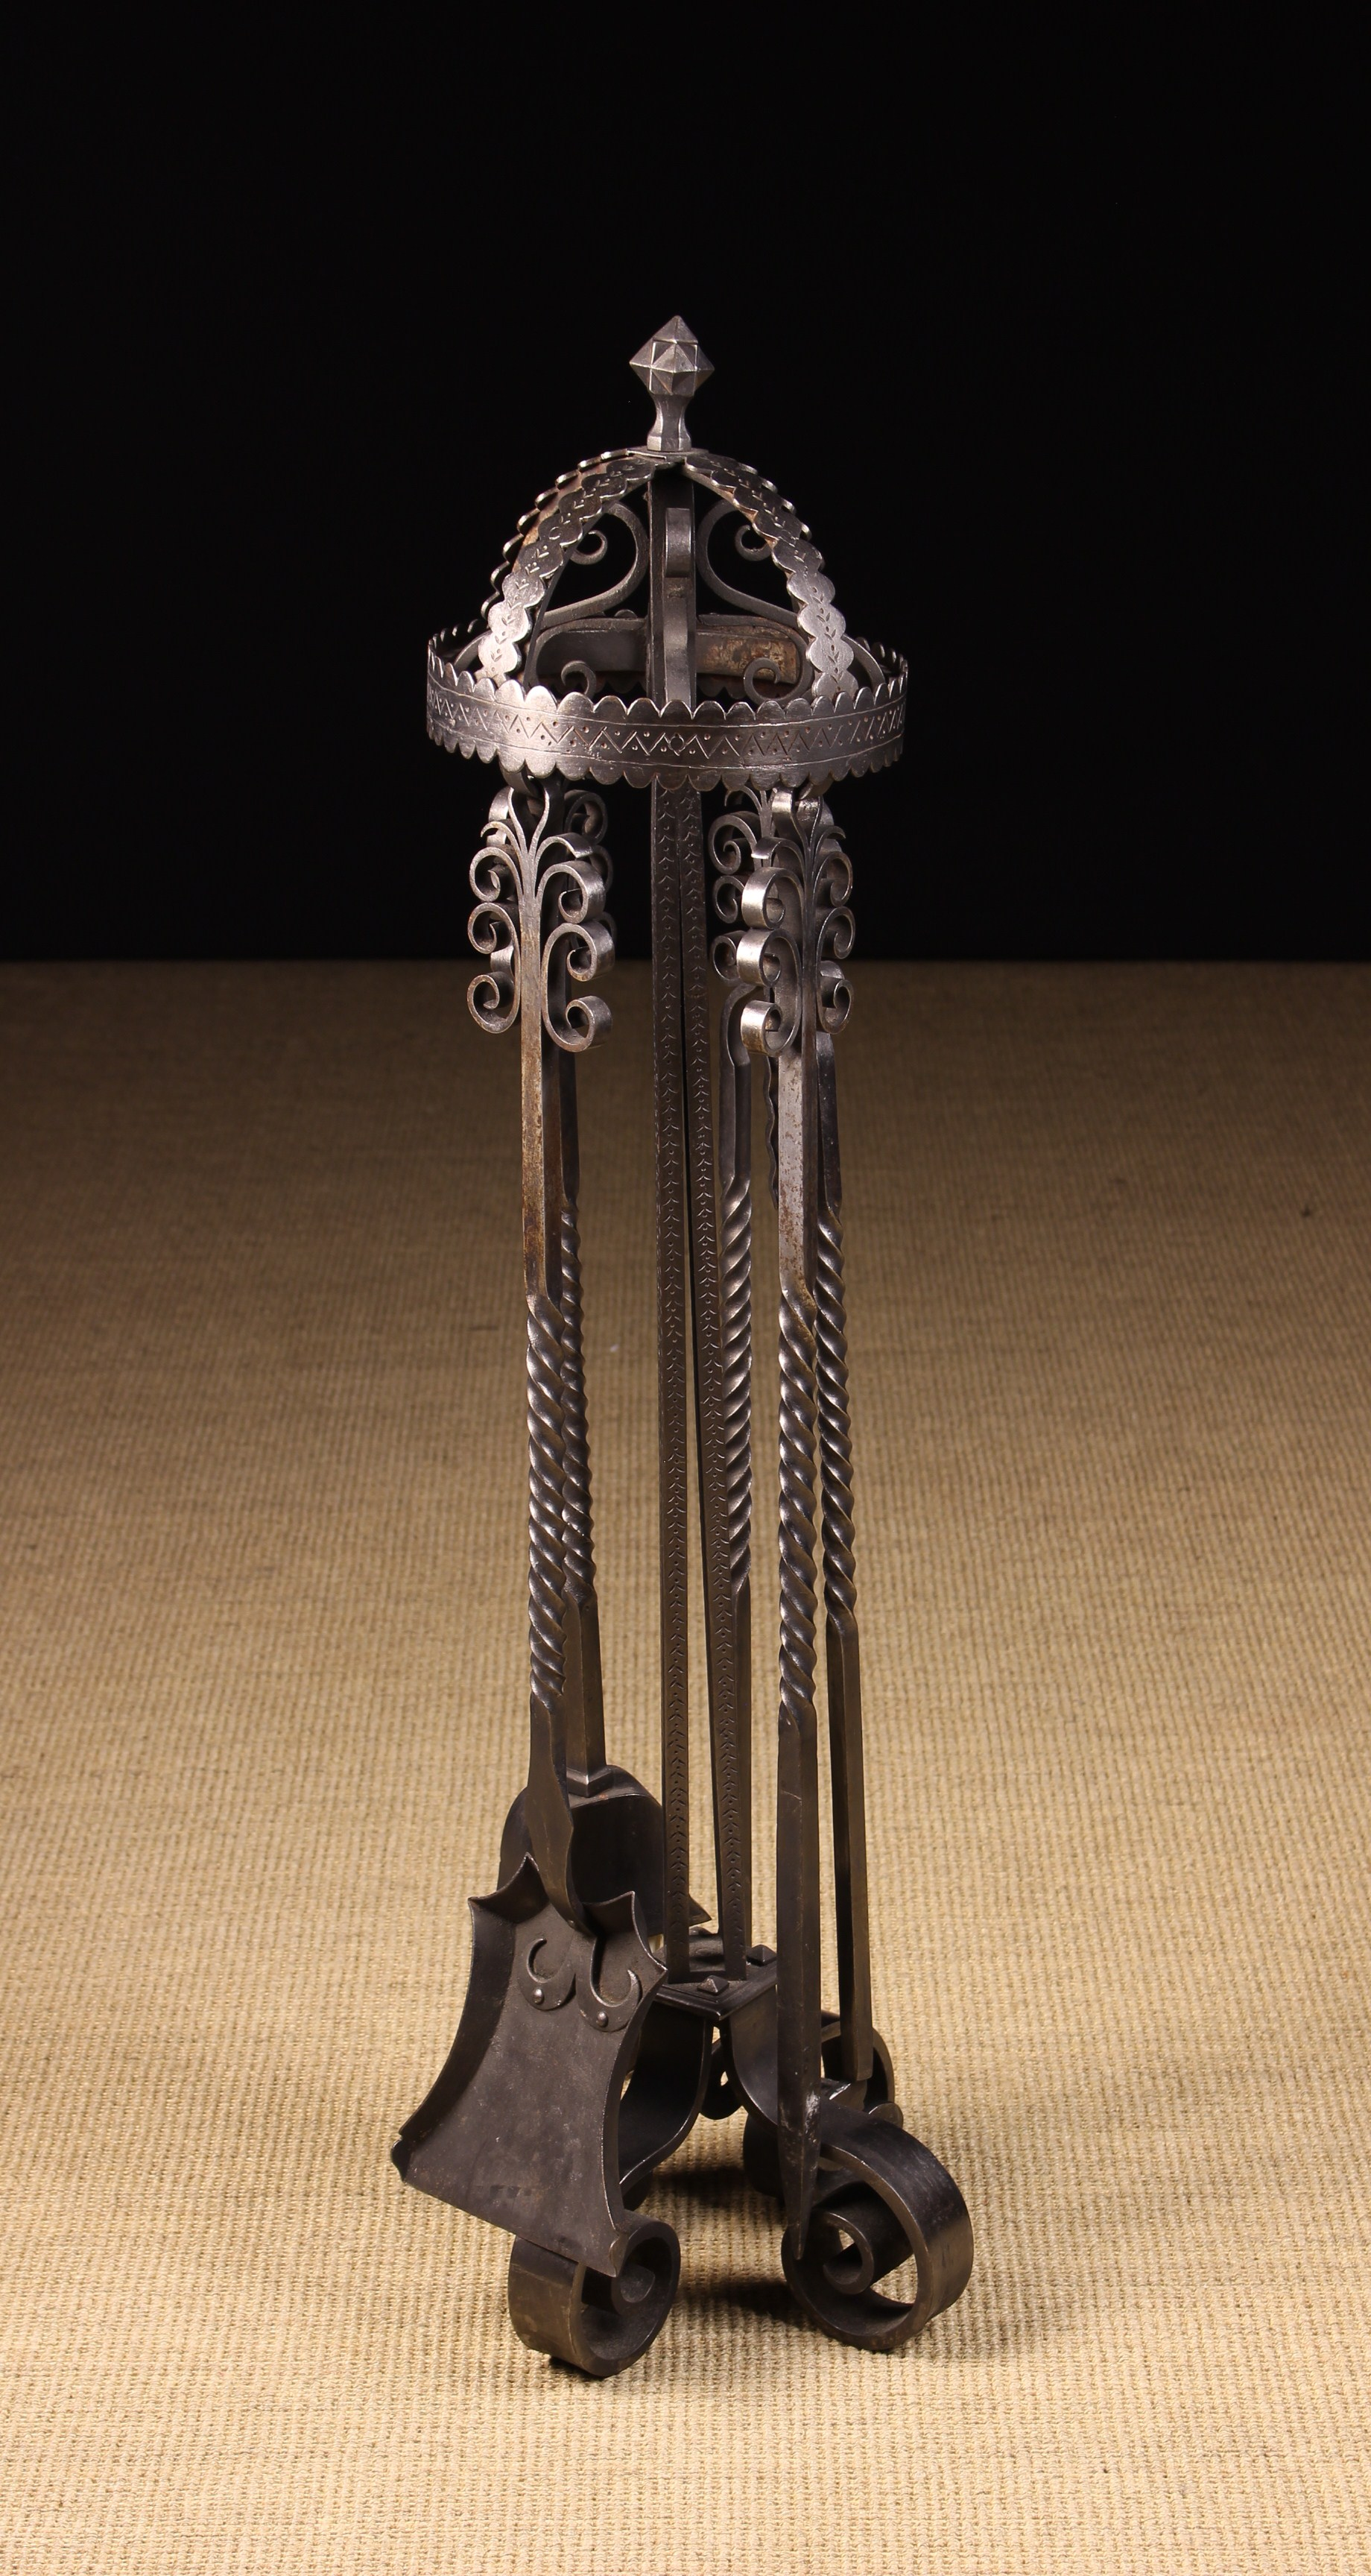 A Handsome Arts & Crafts Style Wrought Iron Fire Companion Set.